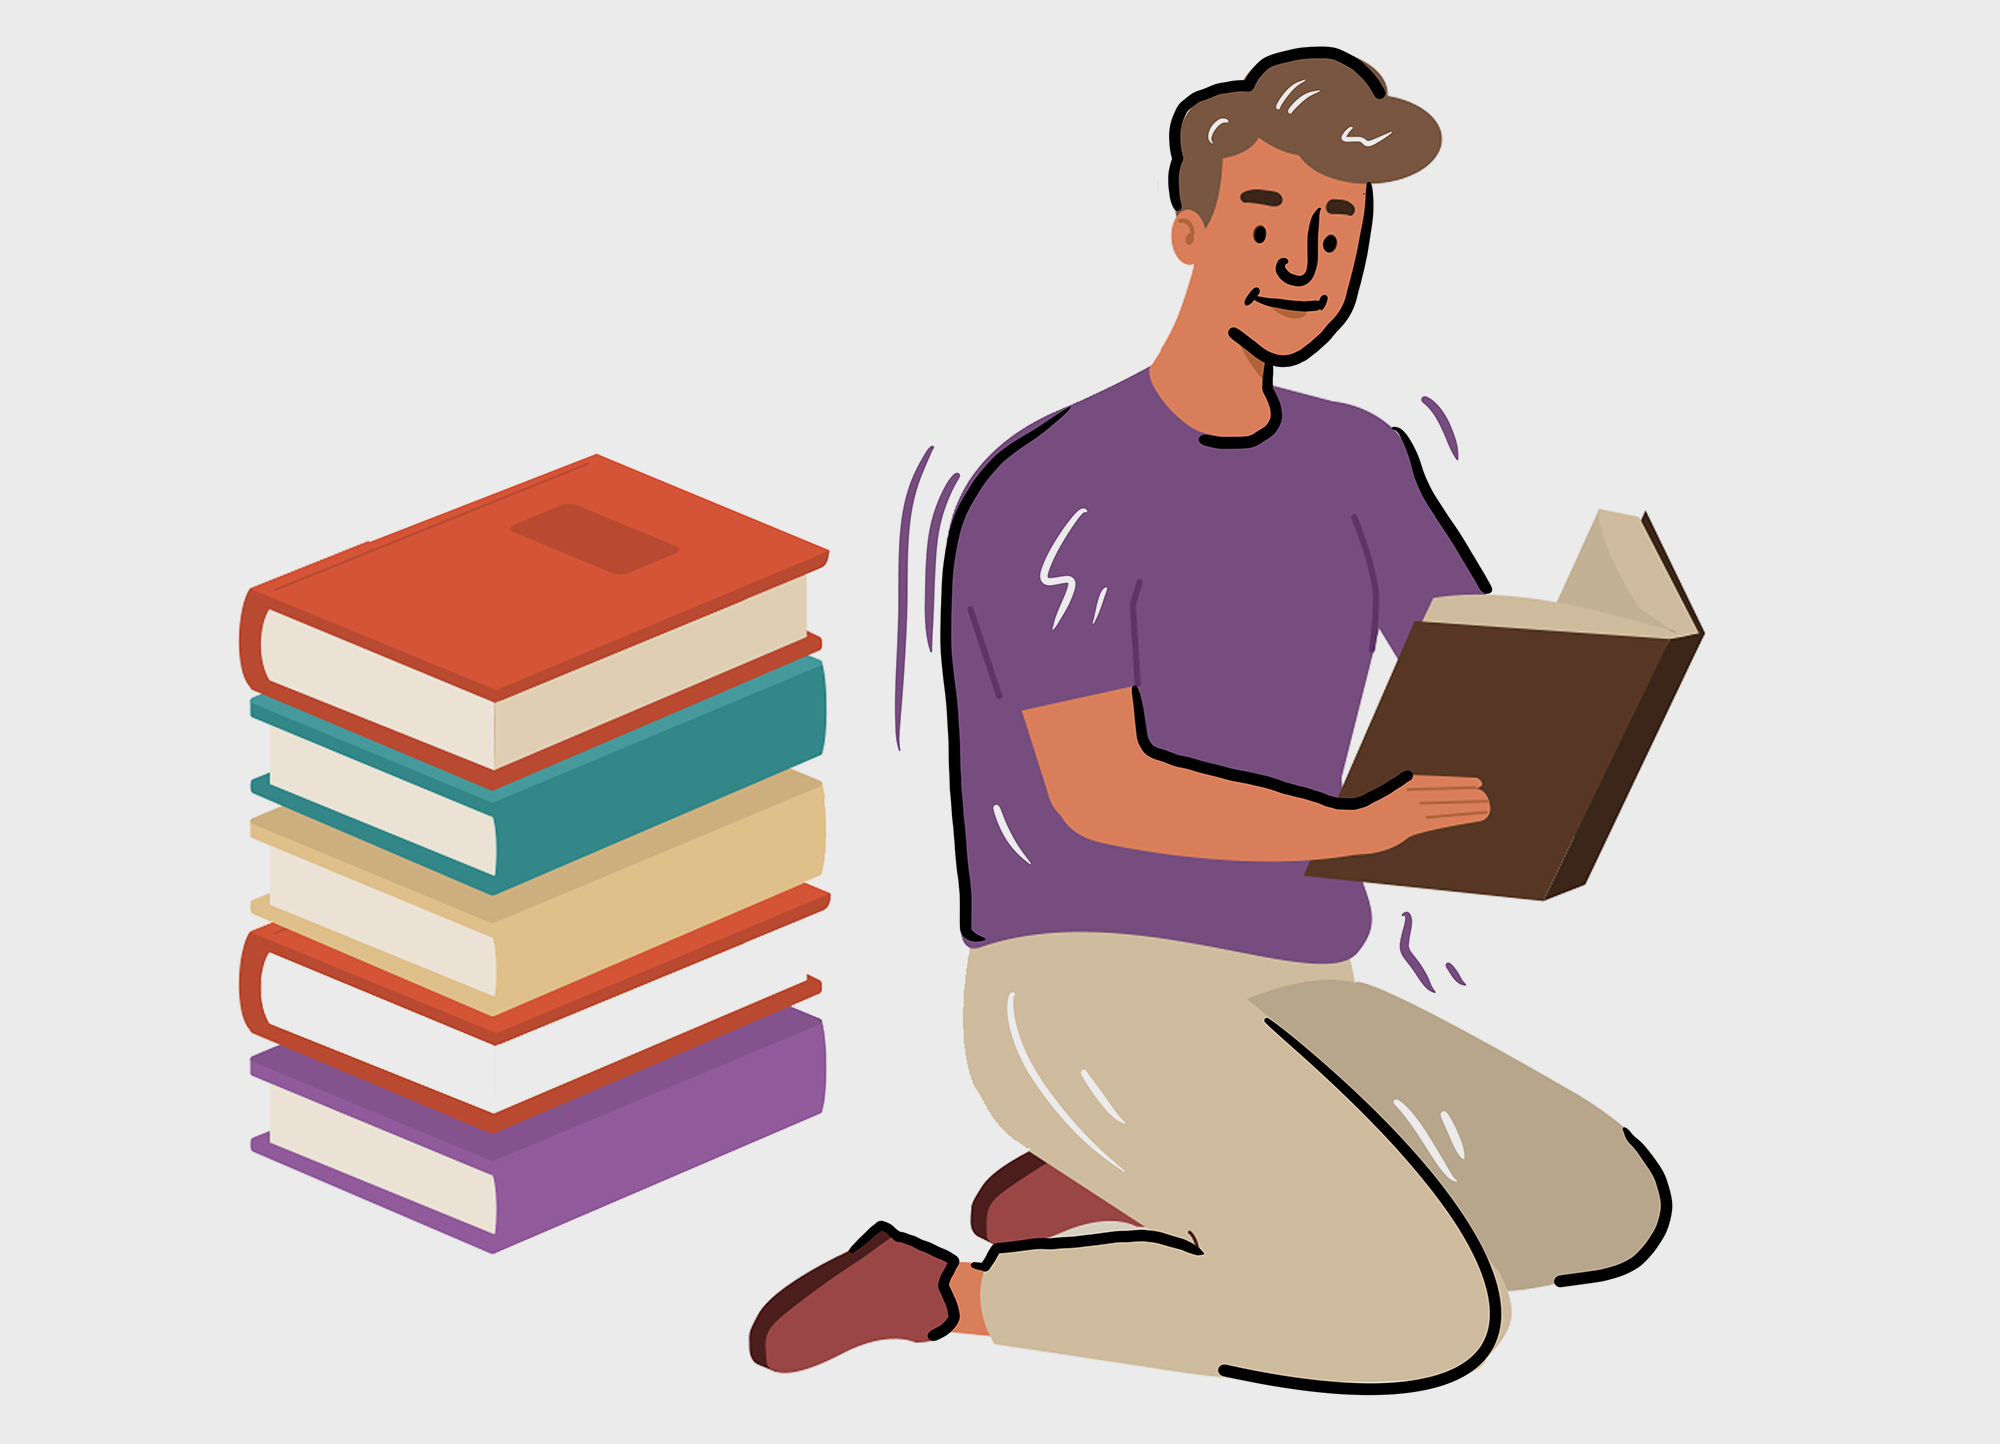 Illustration of a man reading a book